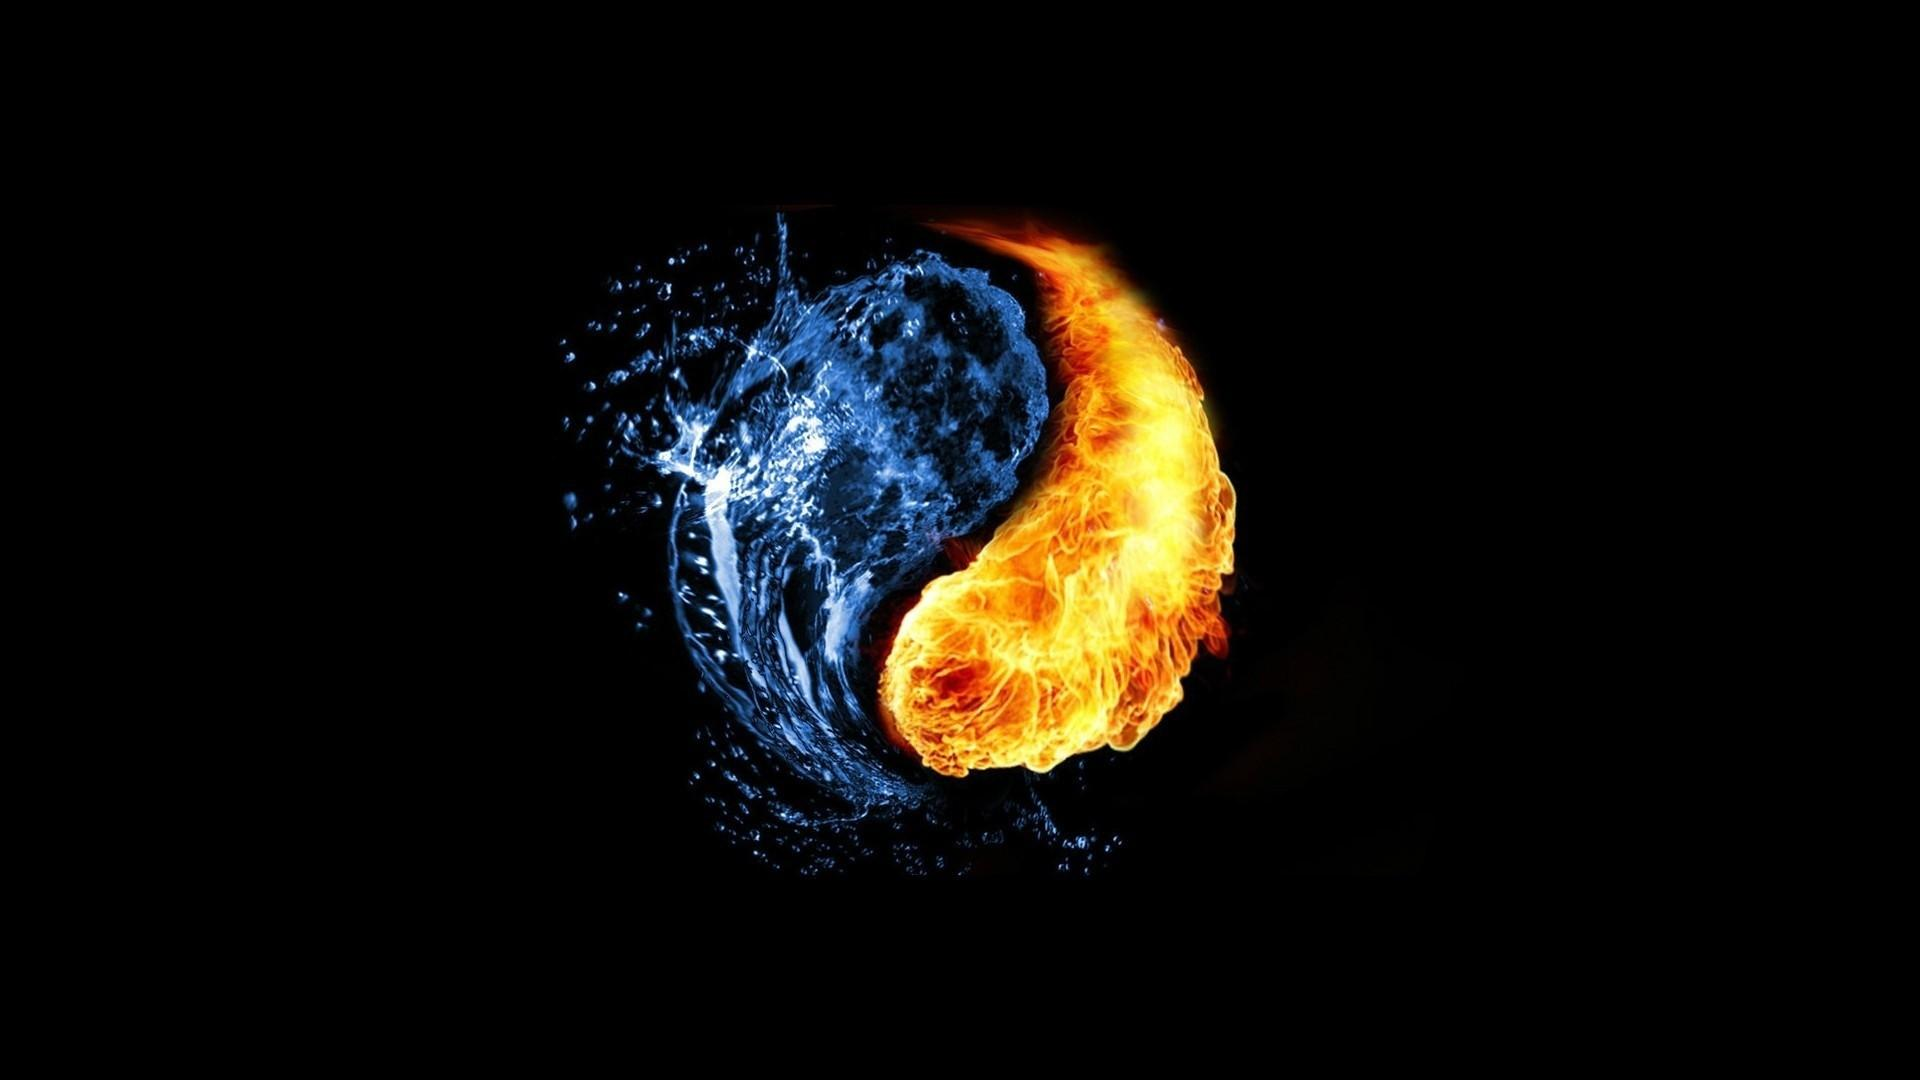 Water-fire-yin-yang-3d-1080x1920-1920×1080-wallpaper-wpc90010522